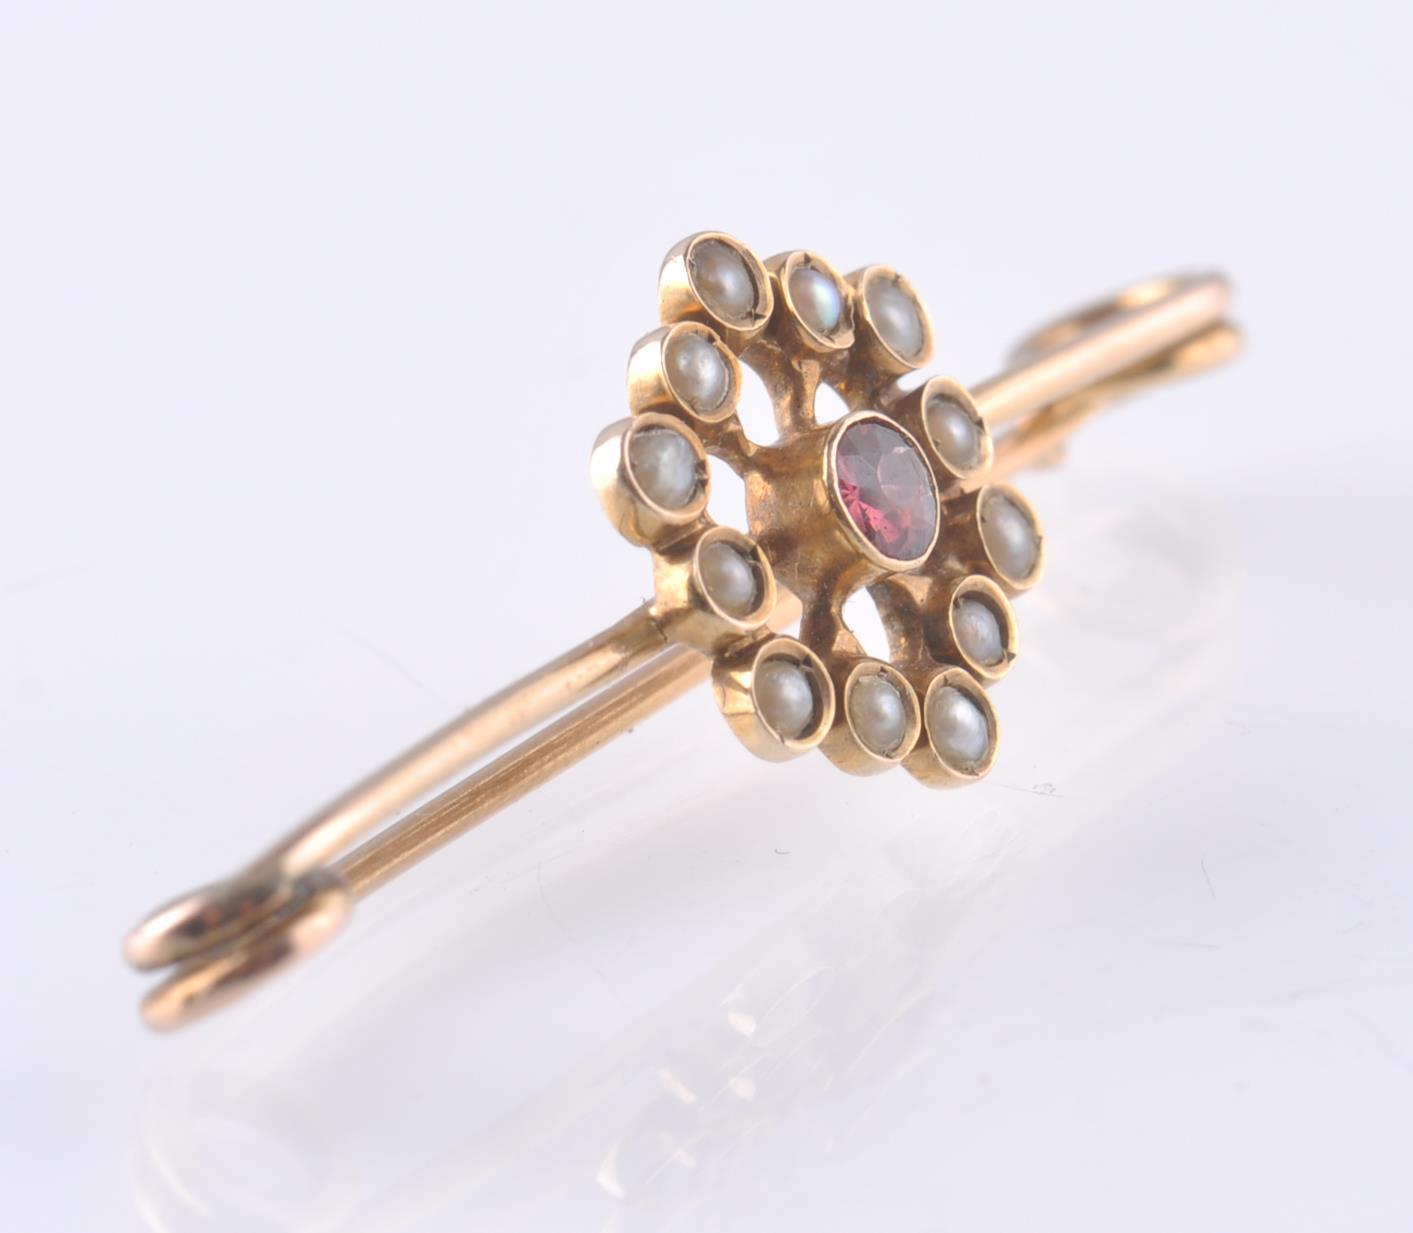 VICTORIAN 9CT GOLD SEED PEARL AND RUBY BAR BROOCH